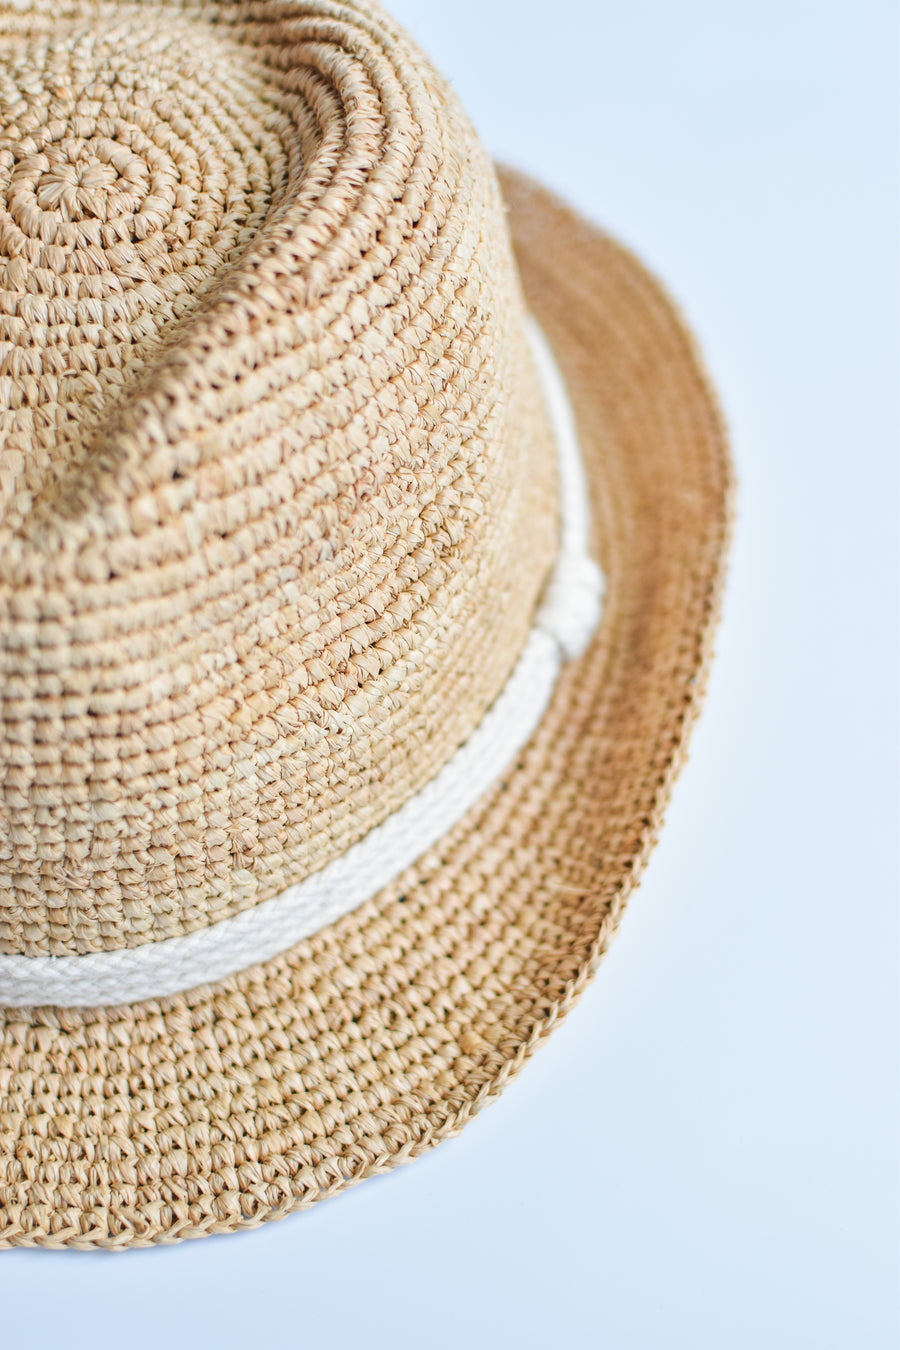 Close up of rope band detail on crochet straw fedora hat.